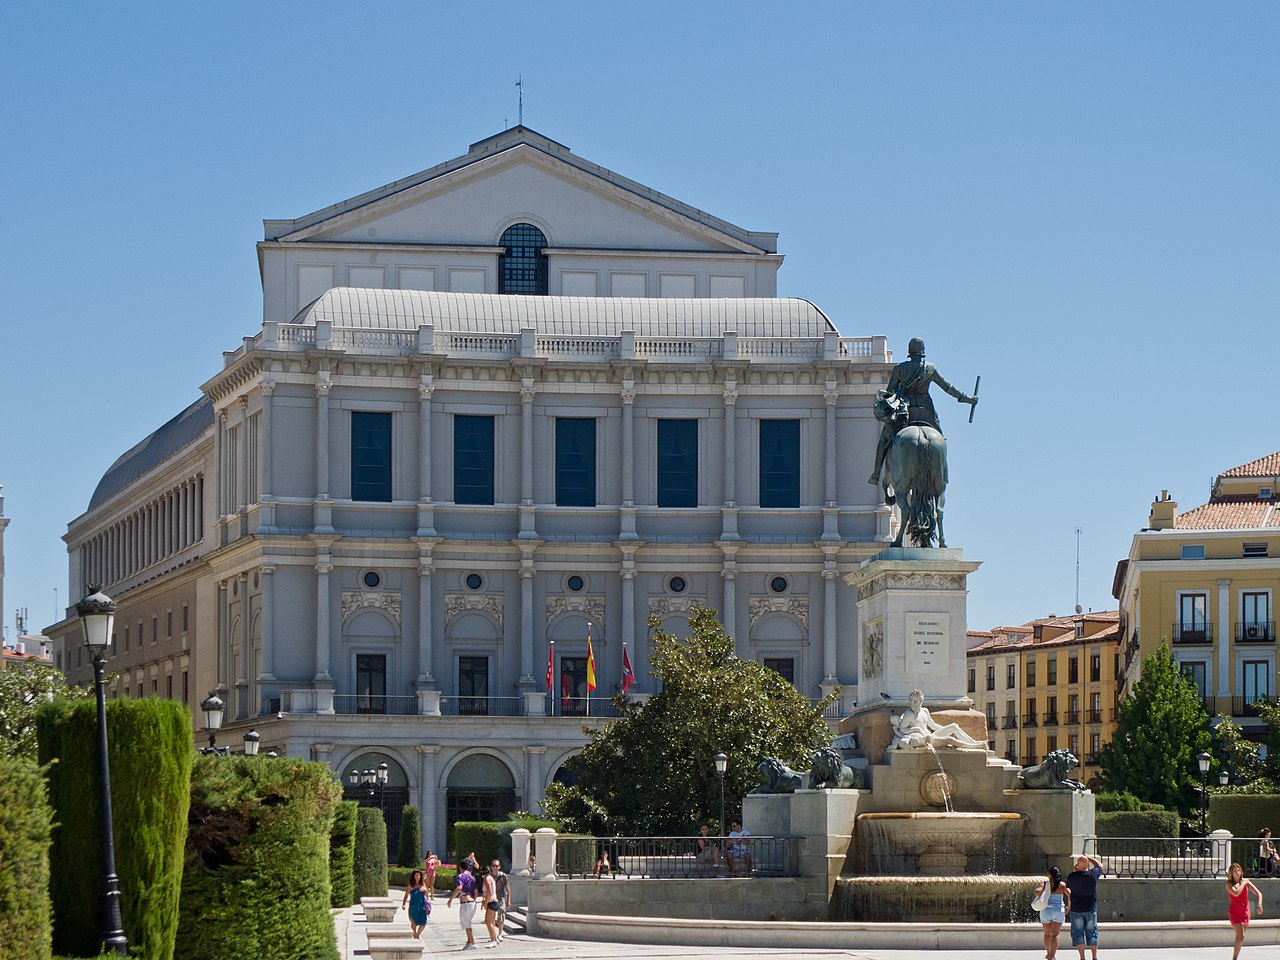 1280px-Teatro_Real_de_Madrid_-_02.jpg